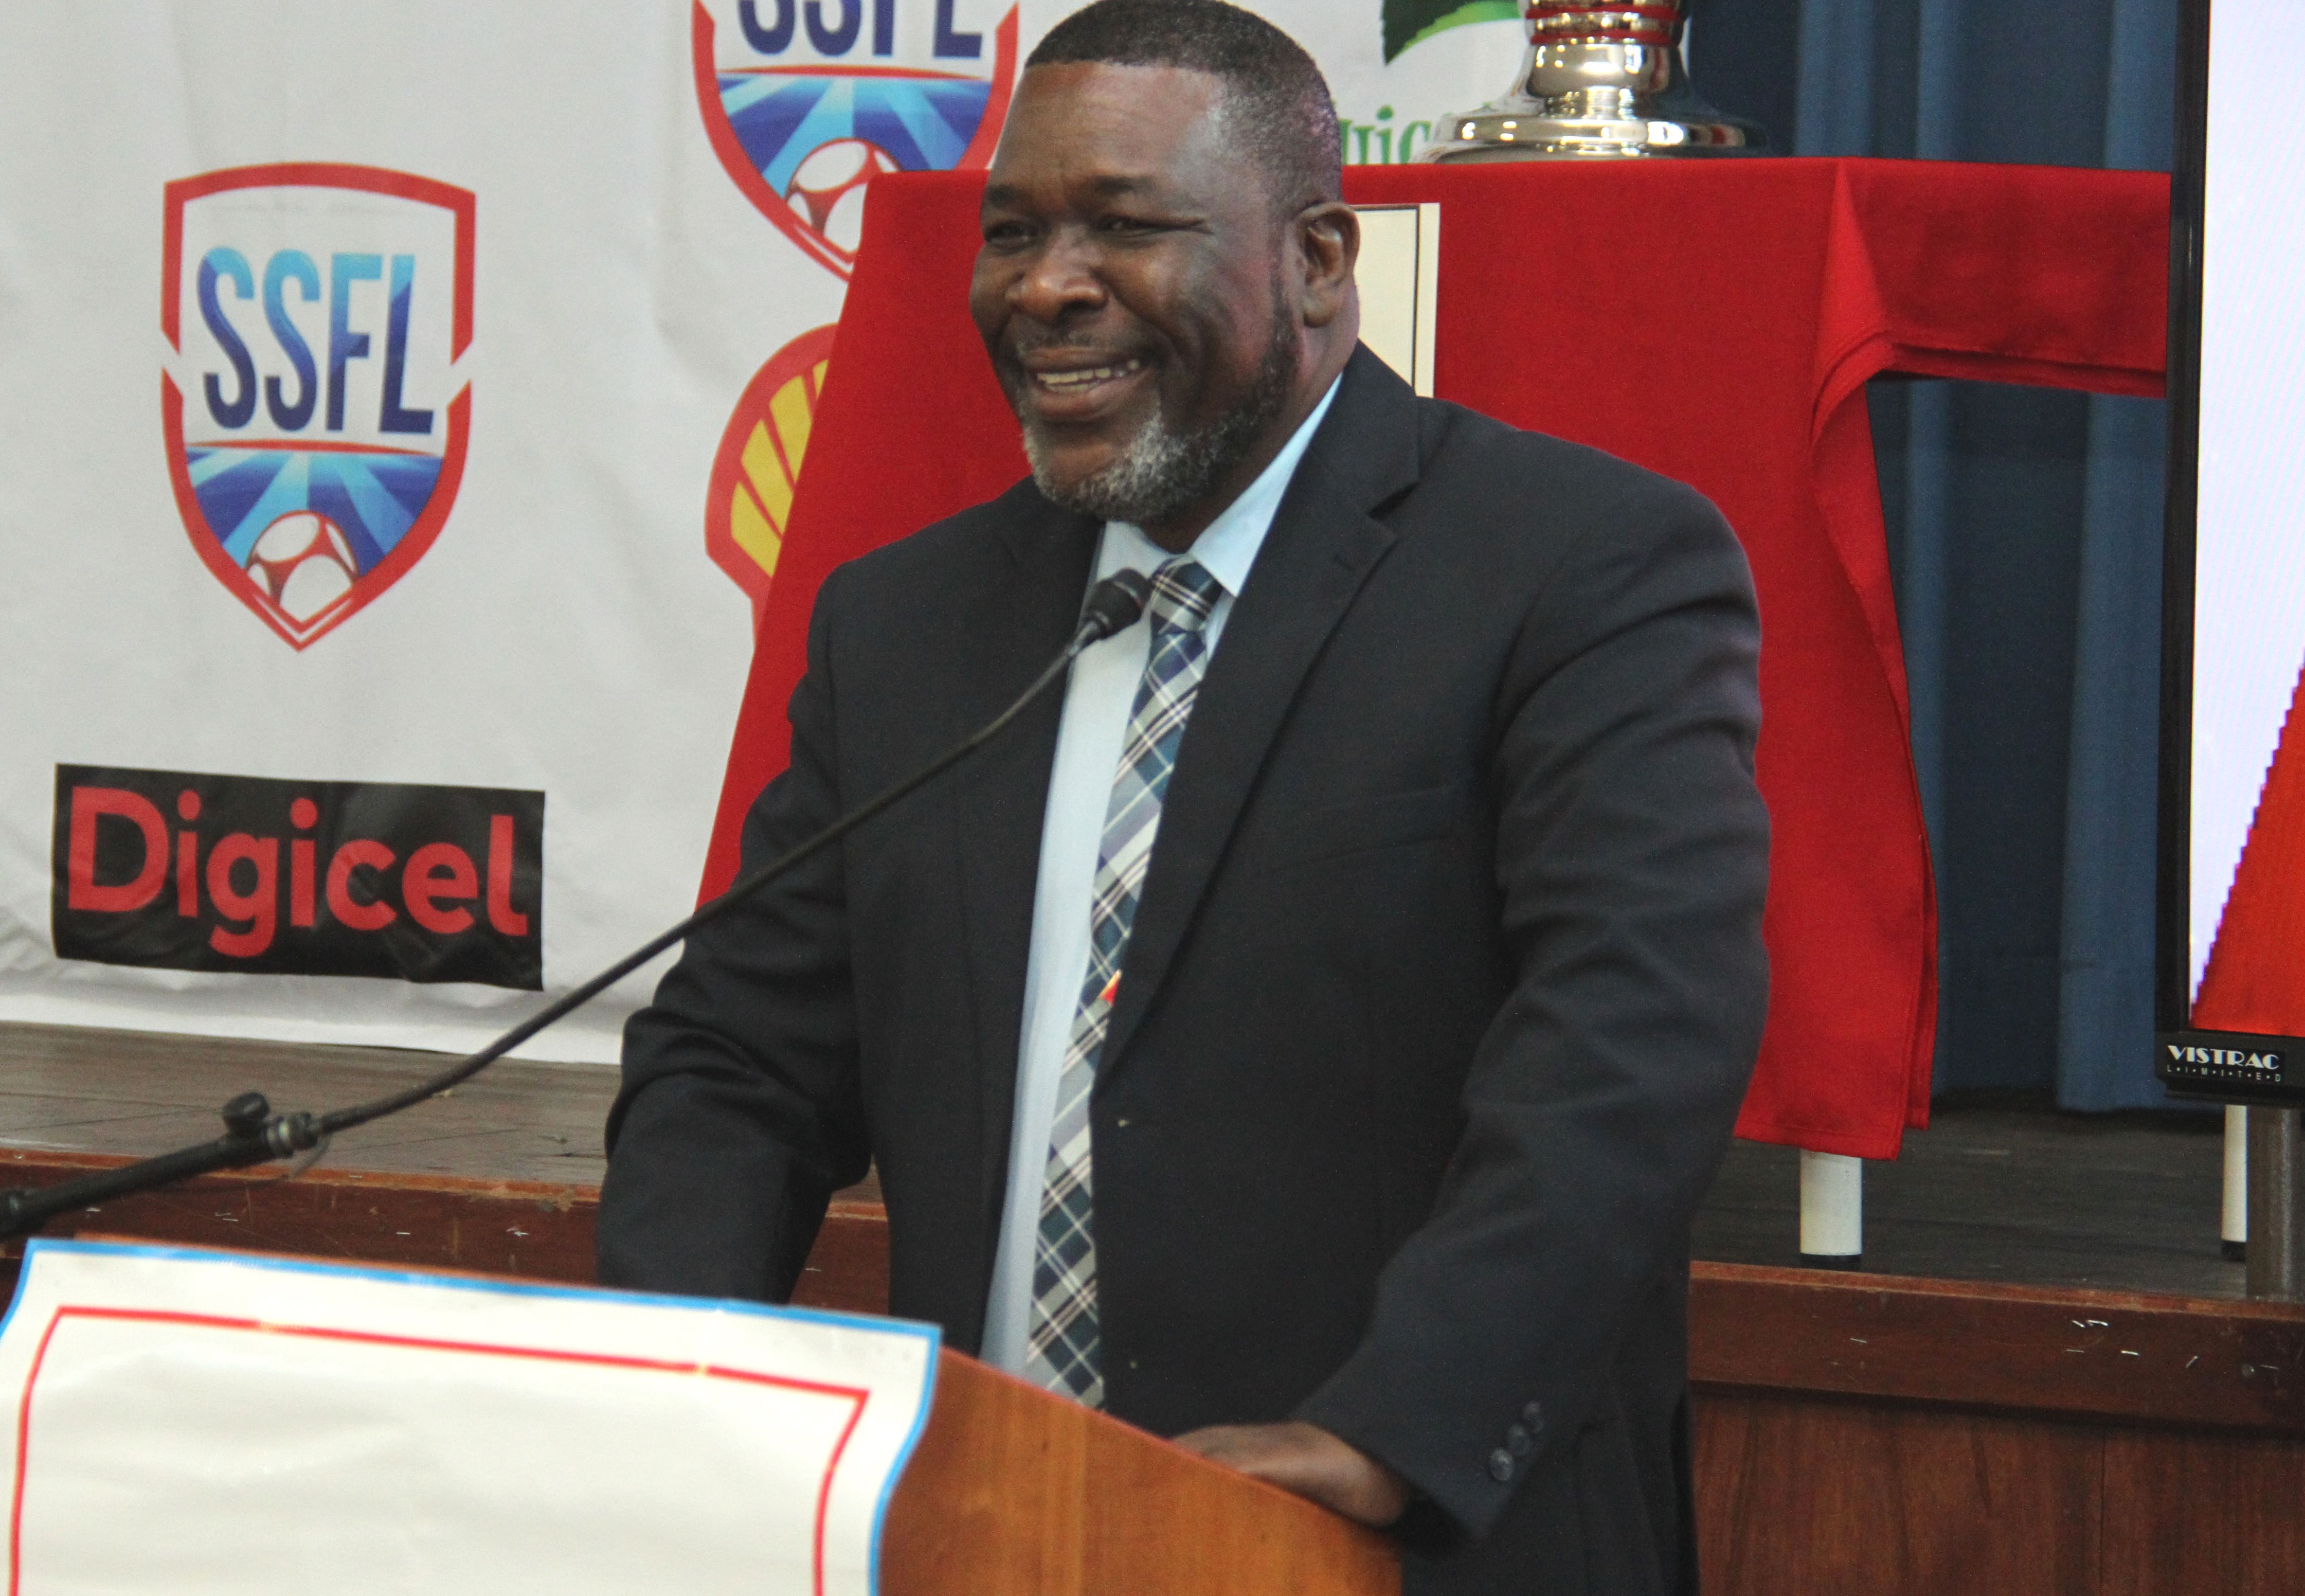 Wallace resigns as SSFL president.